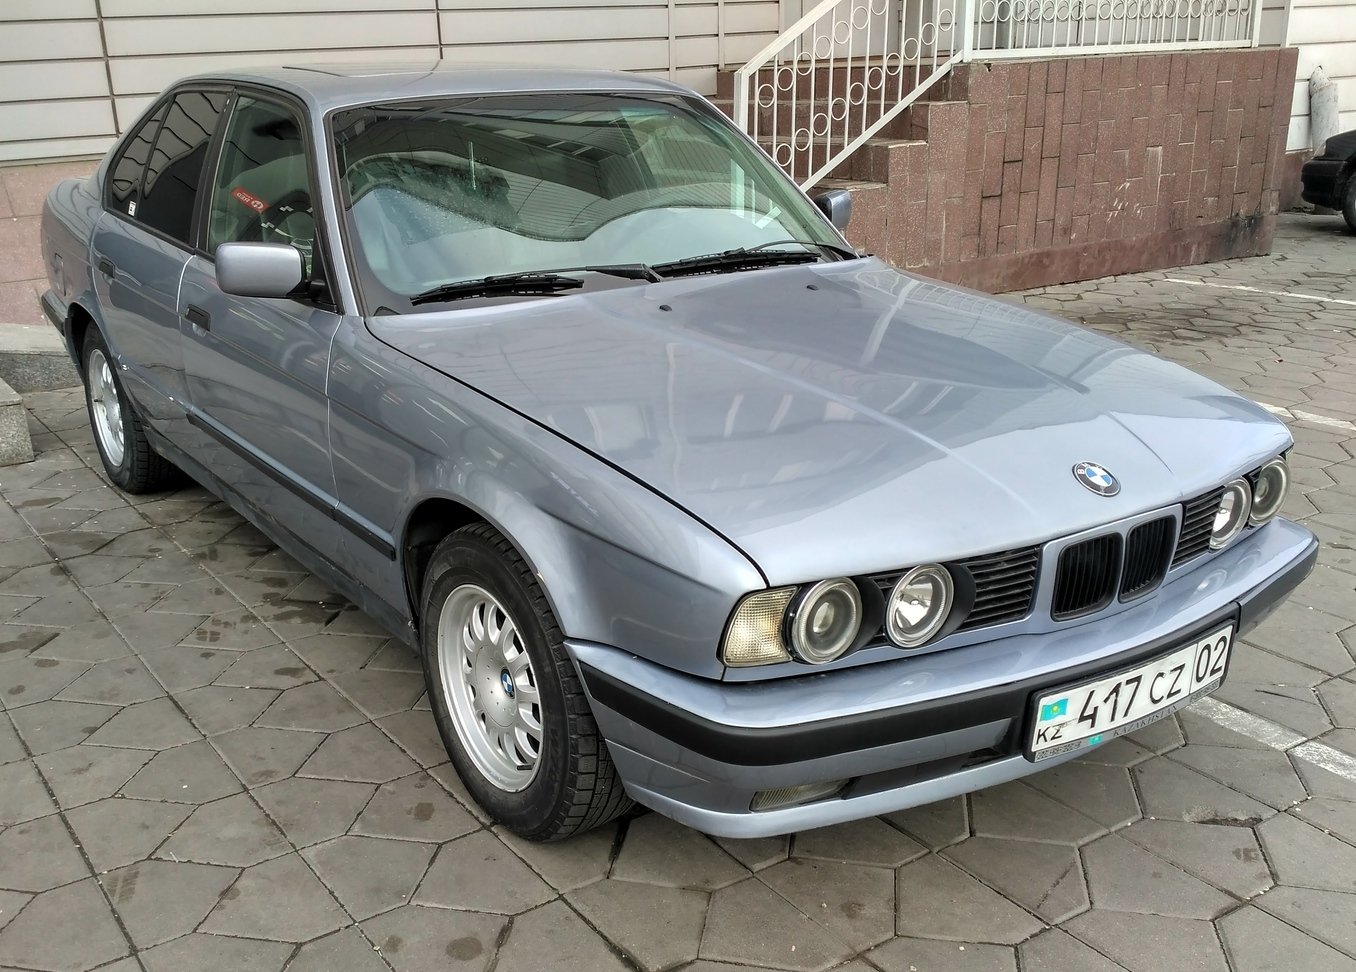 "<span style=""font-weight: bold;"">BMW 528 1991 год.&nbsp;</span><span style=""font-weight: bold;"">Автомобиль сдан в Аренду</span><span style=""font-weight: bold;"">!&nbsp;</span>"